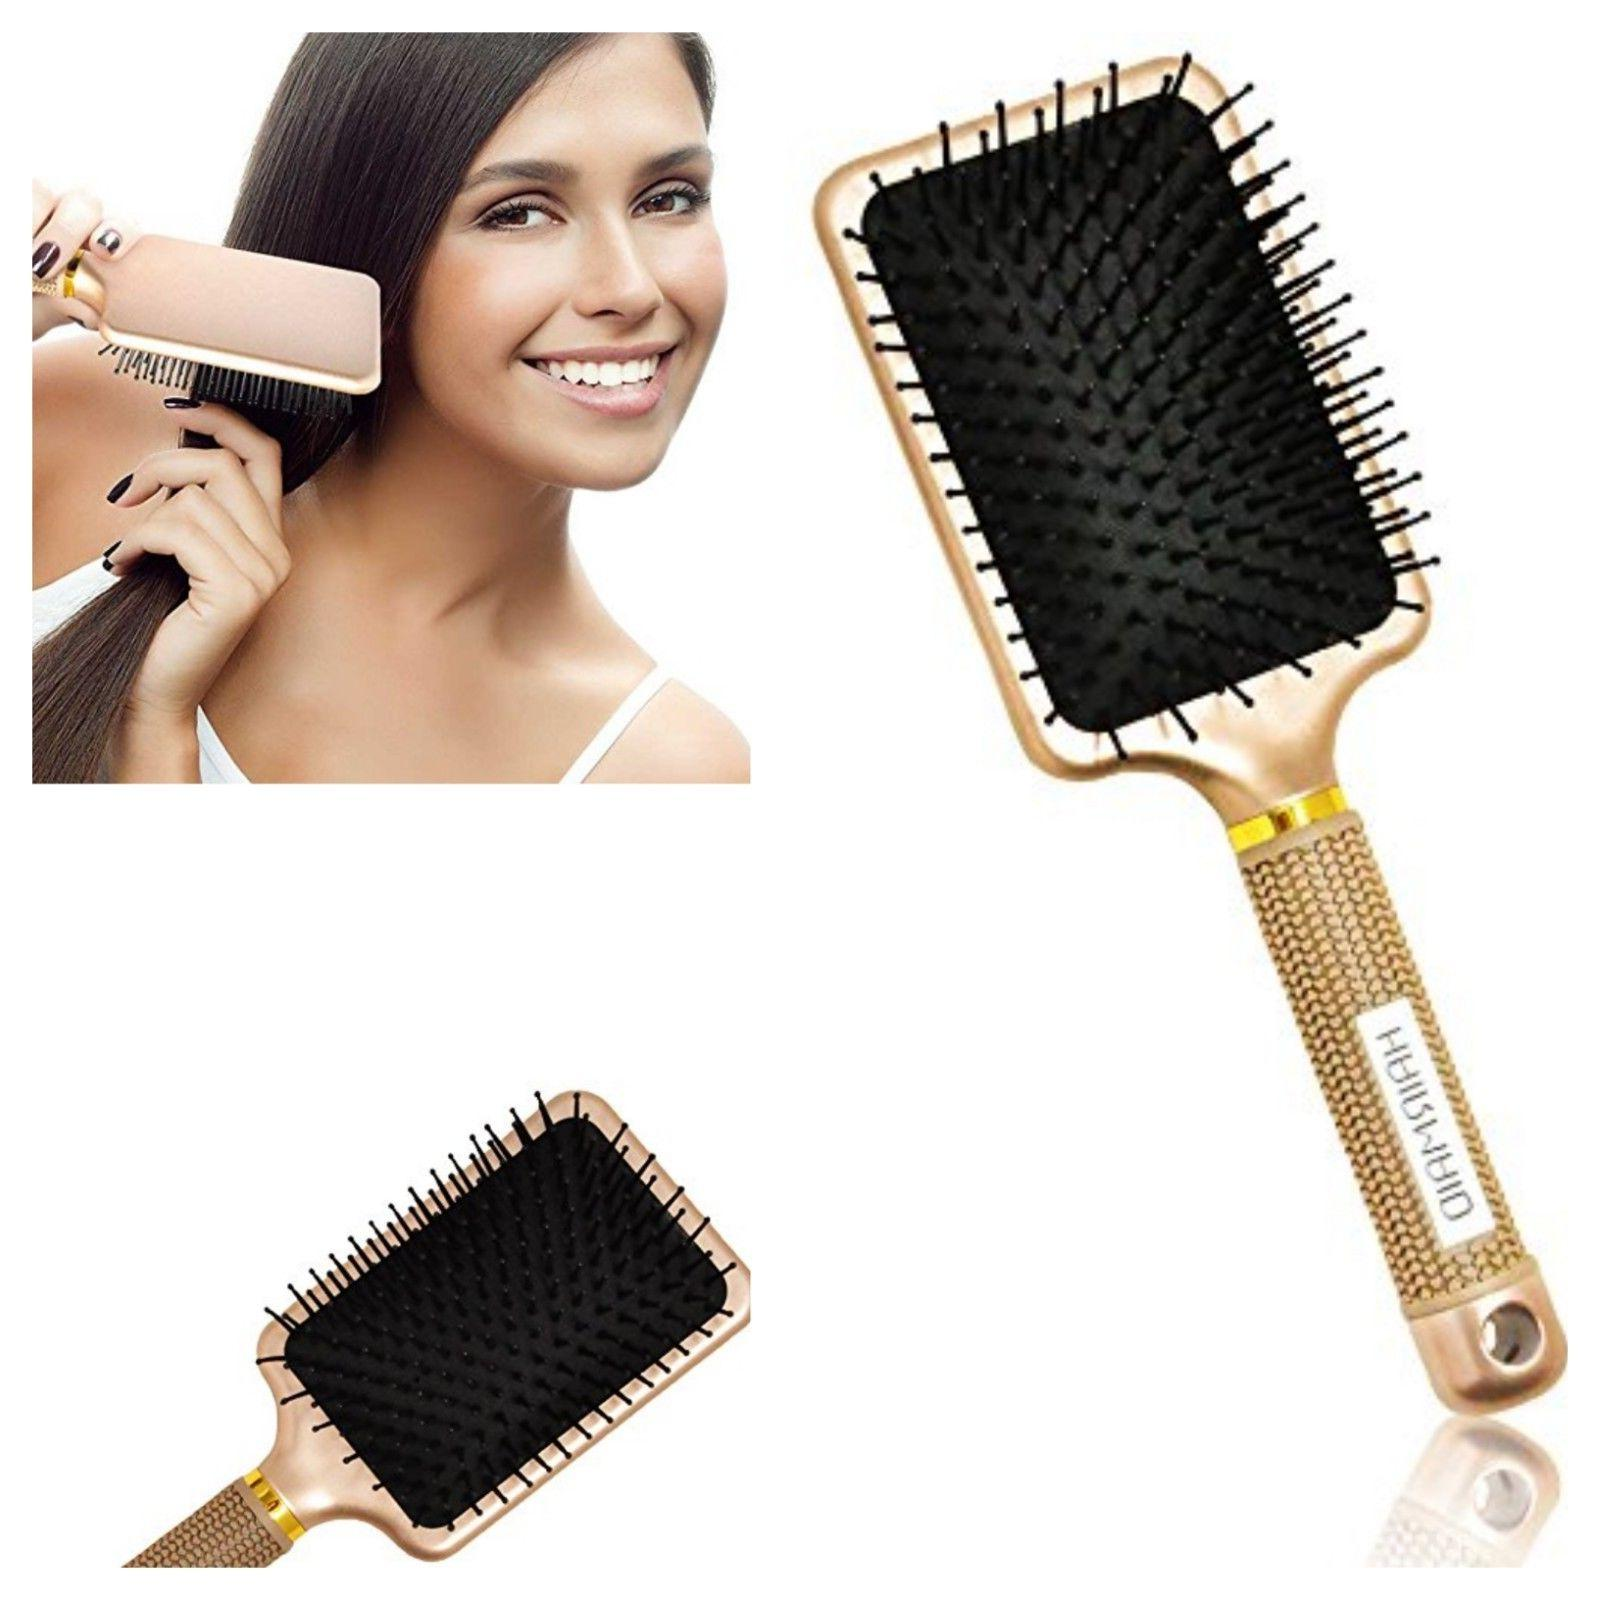 Detangler Hair Brush Professional Curly Straight All Hairs T